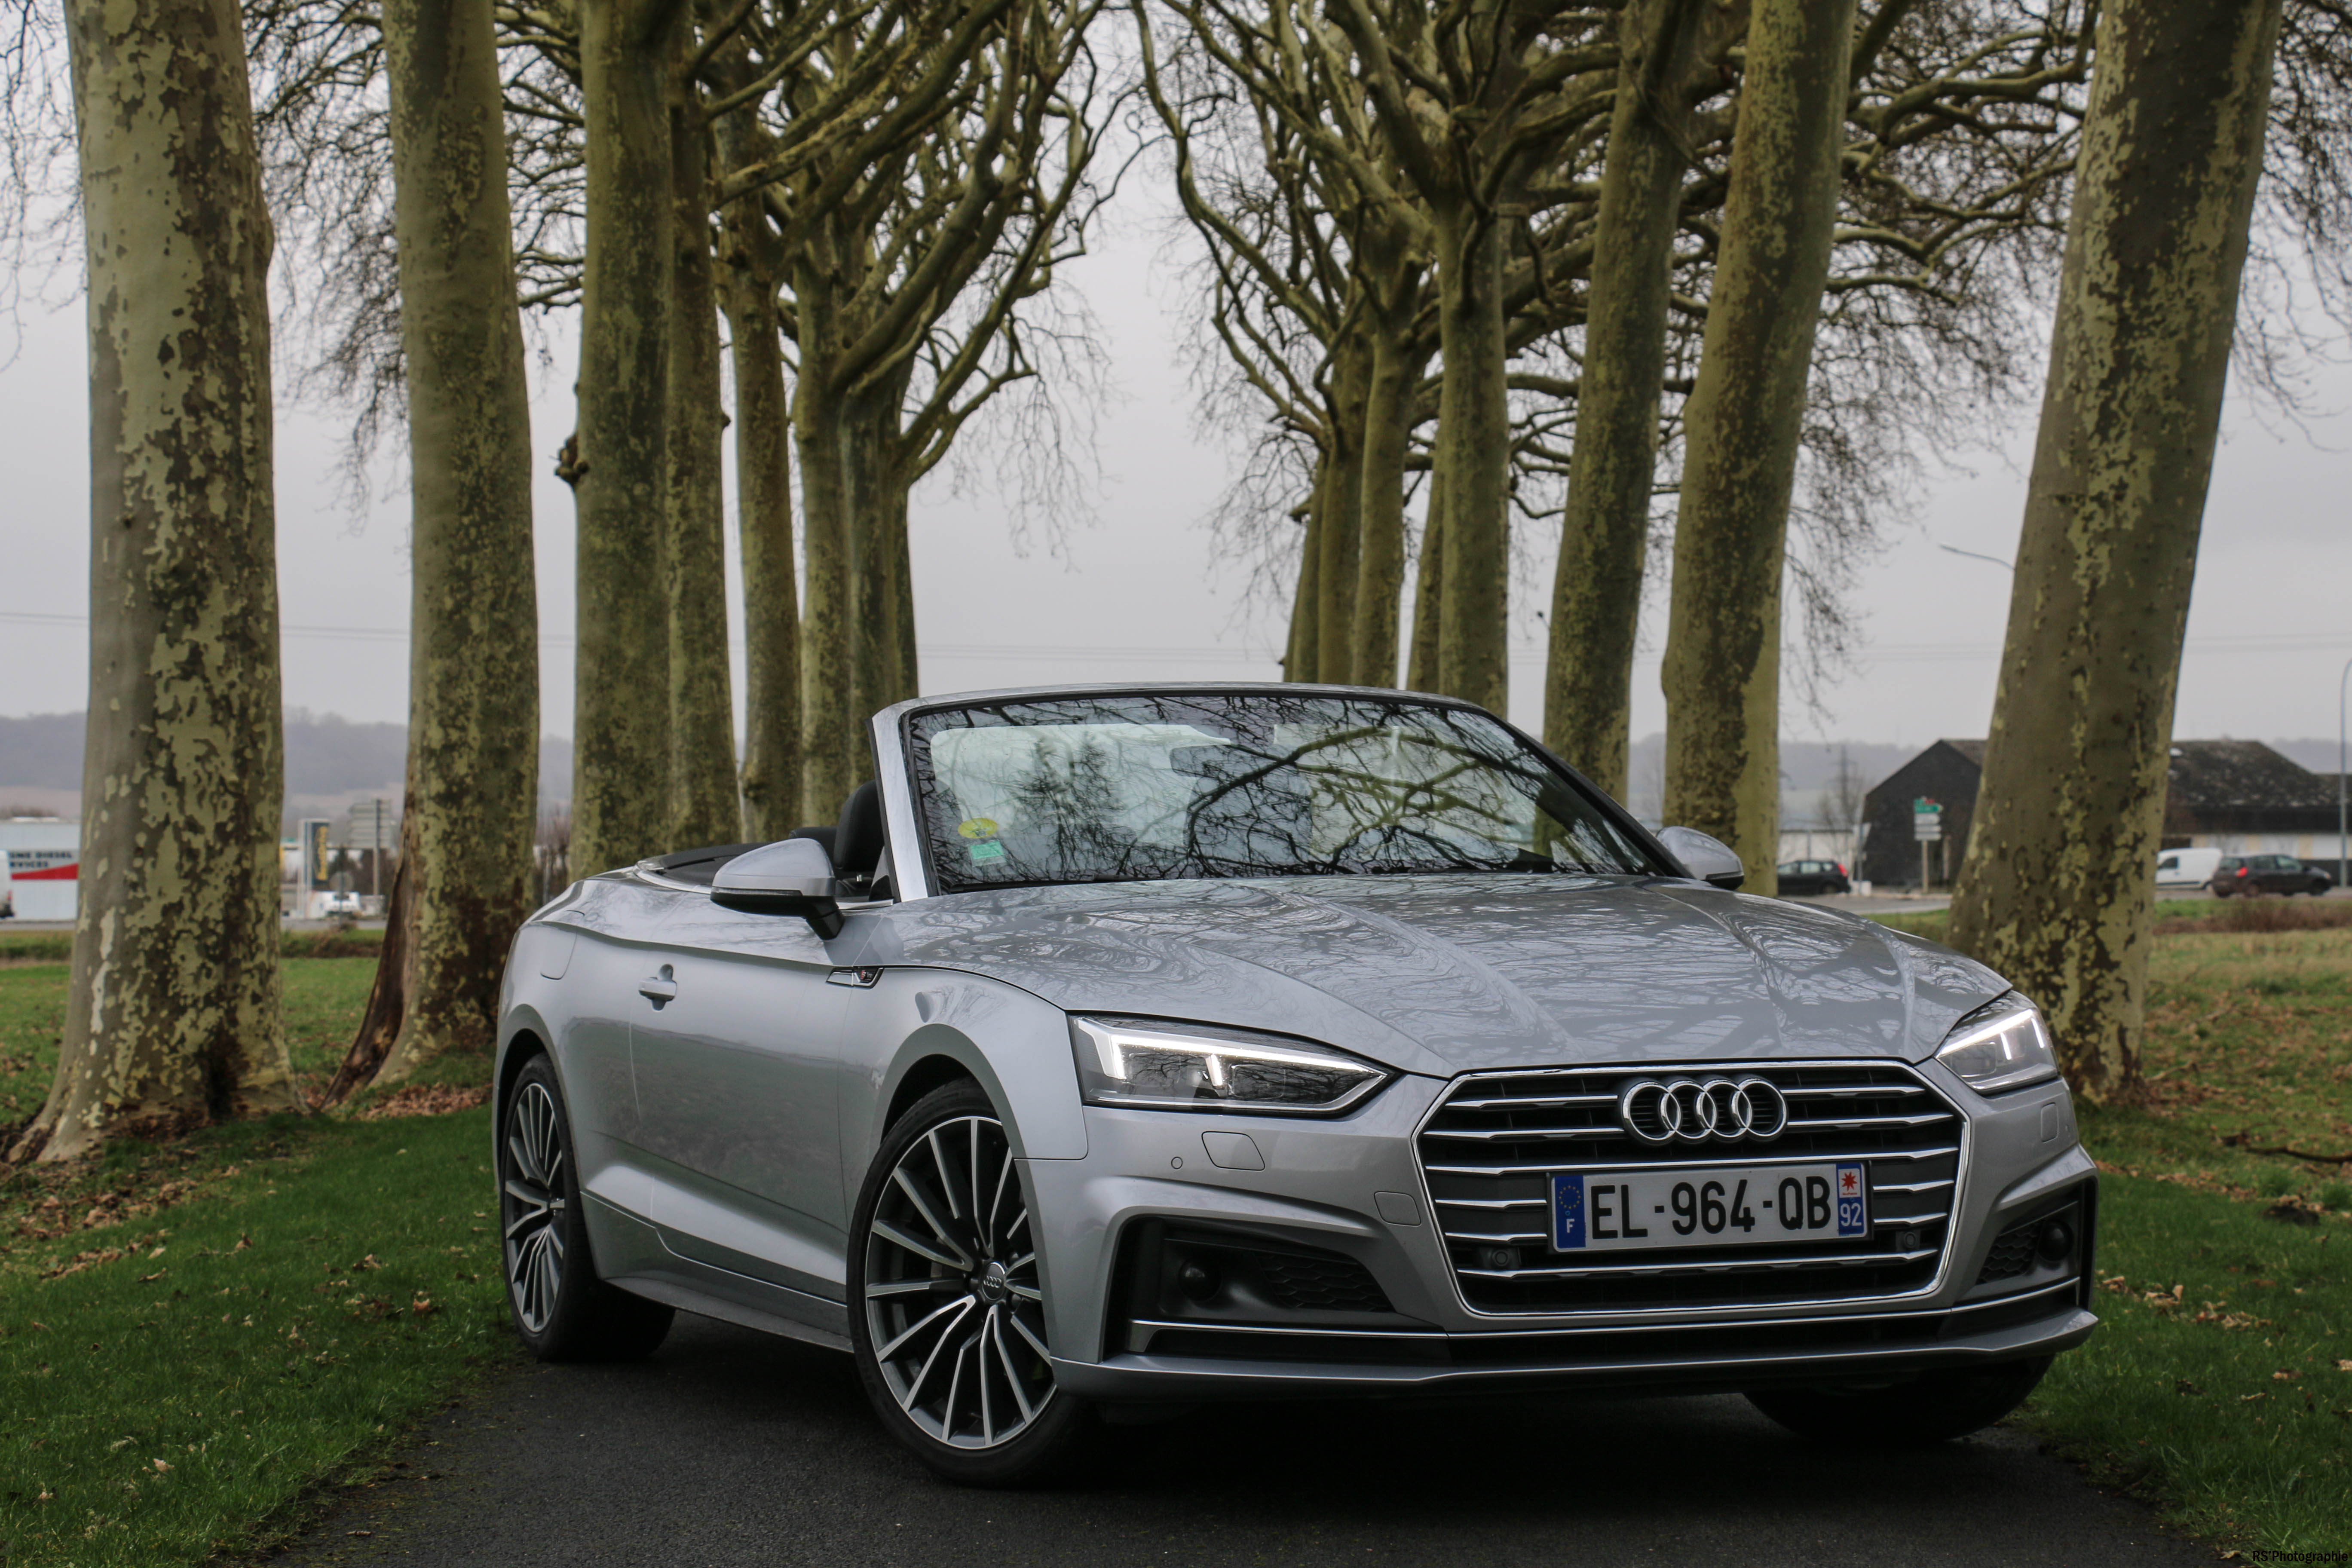 audia5cab7-audi-a5-190-tdi-cabriolet-avant-front-Arnaud Demasier-RSPhotographie